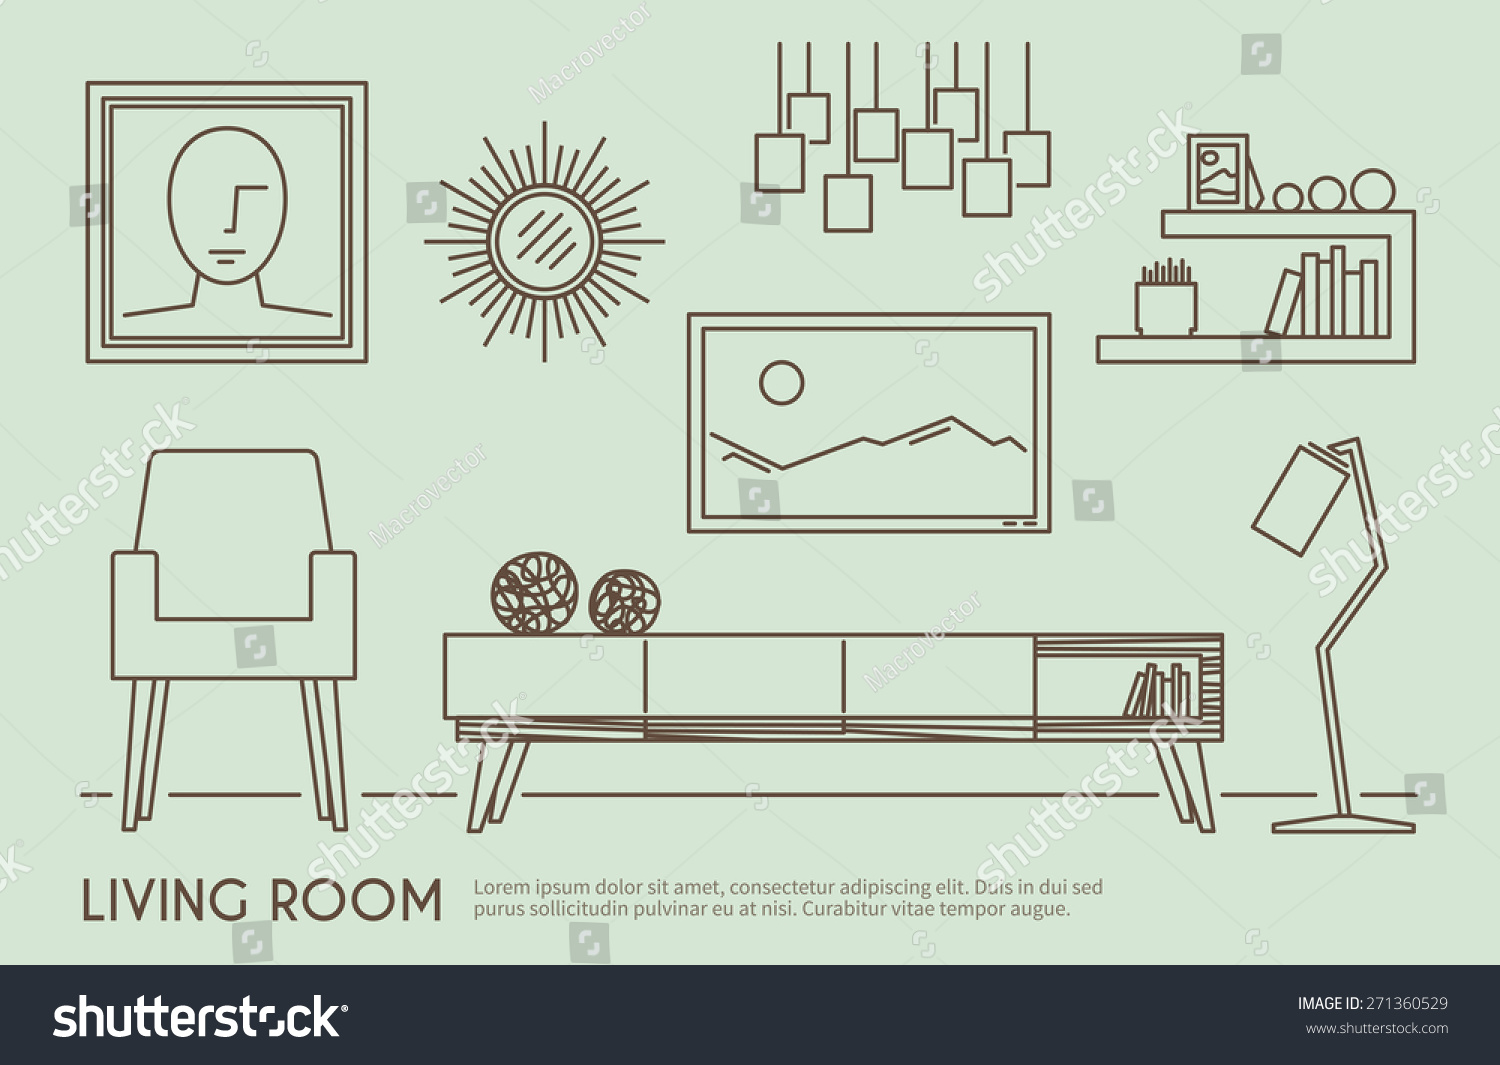 Living room interior design outline furniture for Apartment design vector